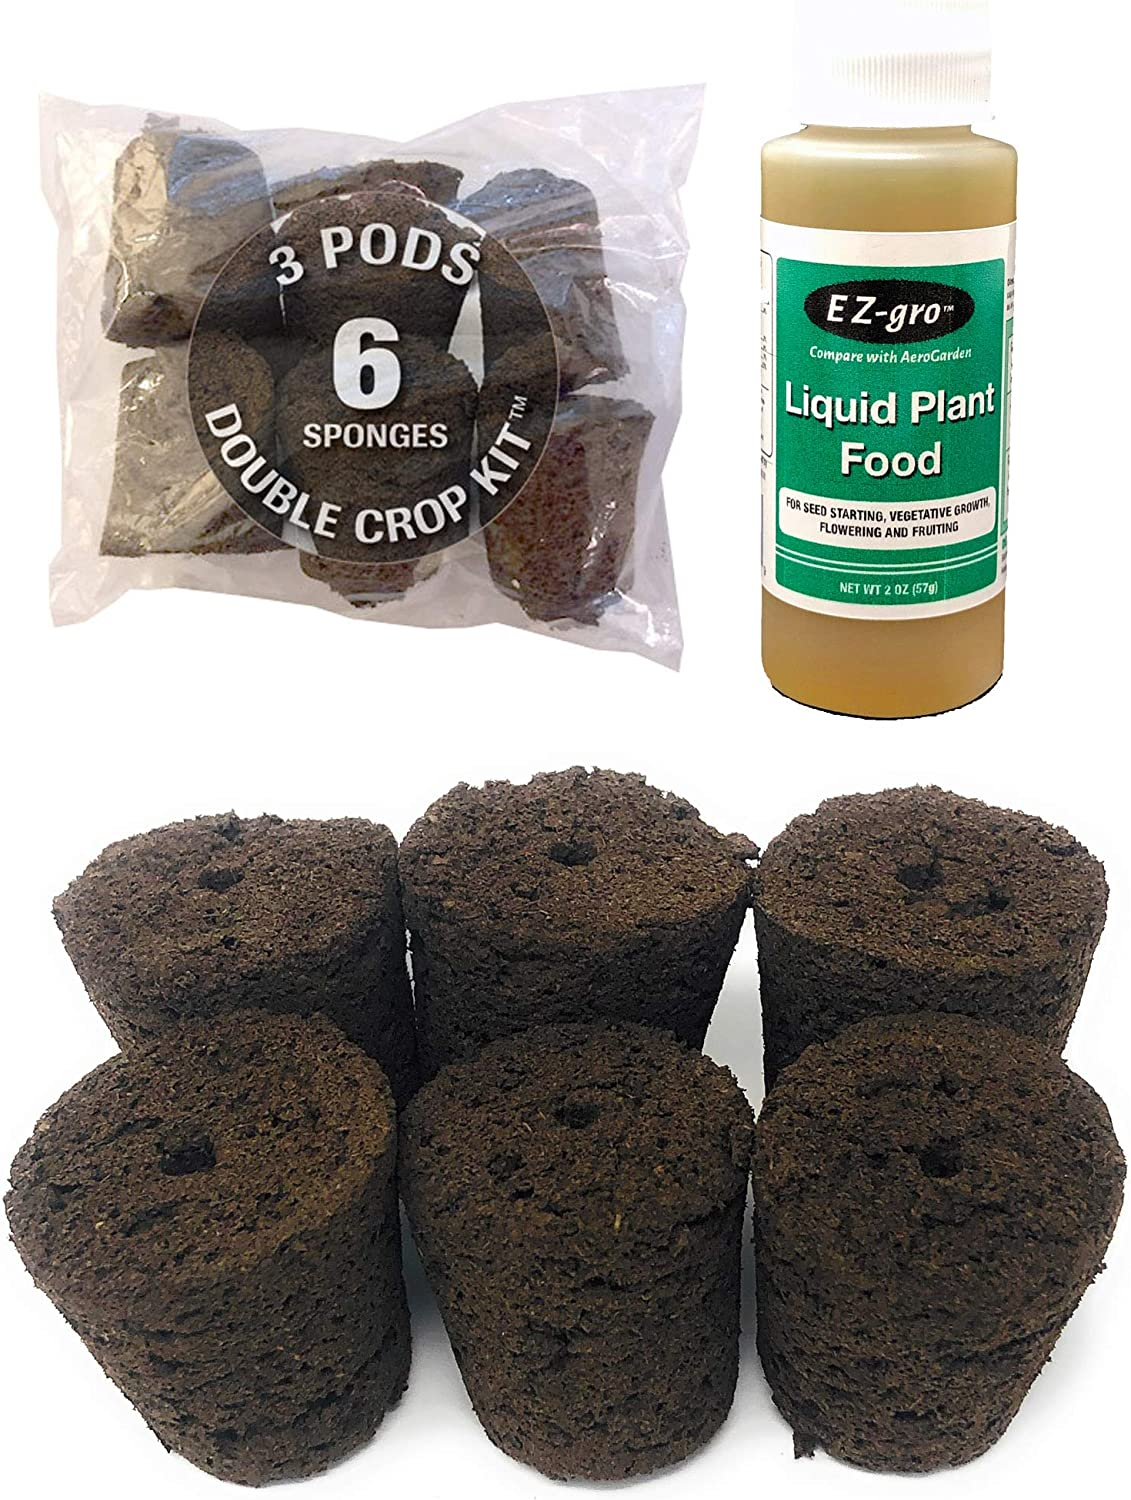 Hydrohort Grow Sponges are Compatible with The Click and Grow Smart Garden | Double The Sponges for 2 Crops (6 Sponges) | Specially Formulated Liquid Nutrients for Smart Gardens